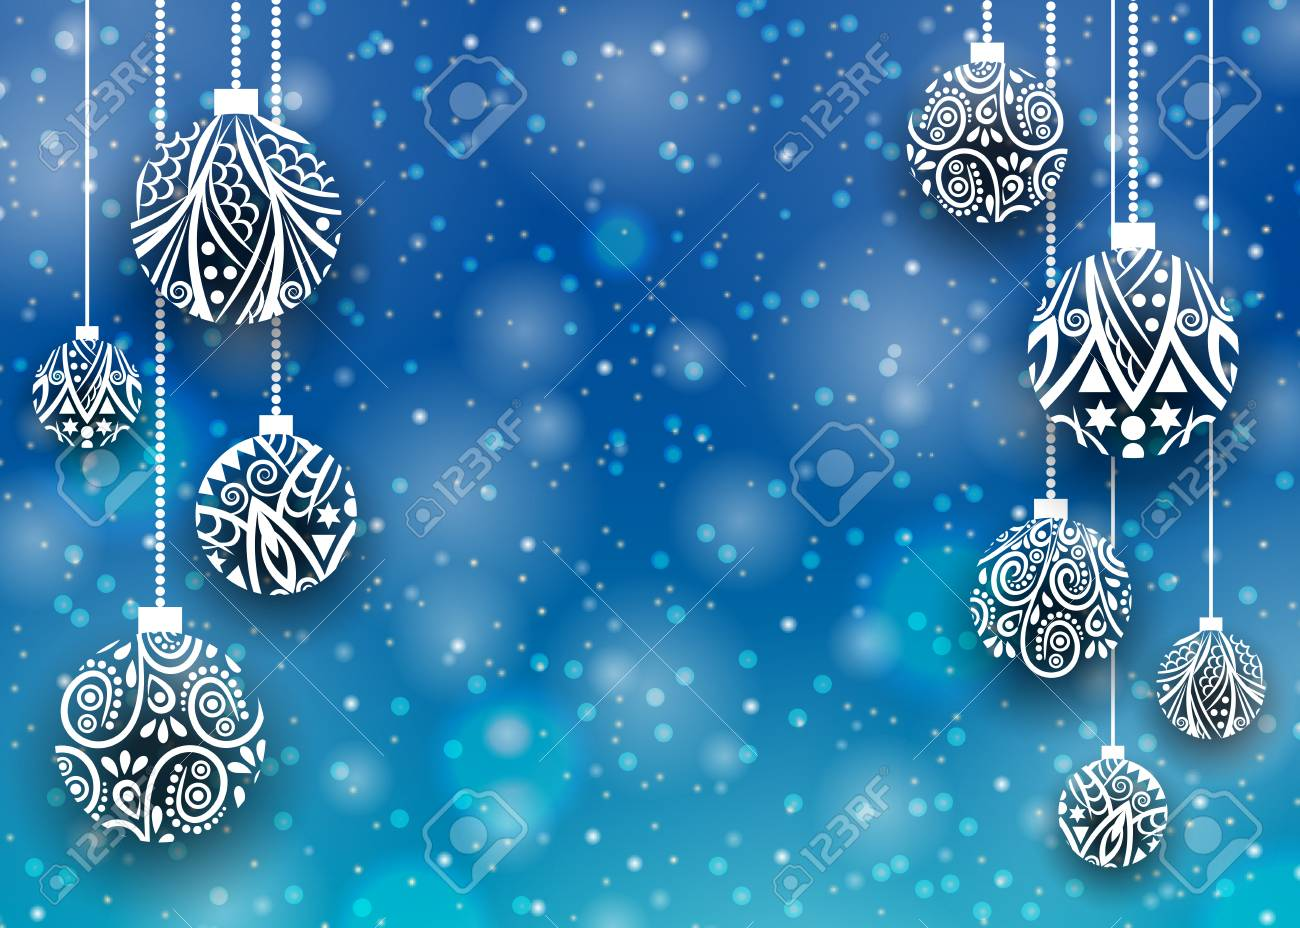 merry christmas and happy new year background christmas snow